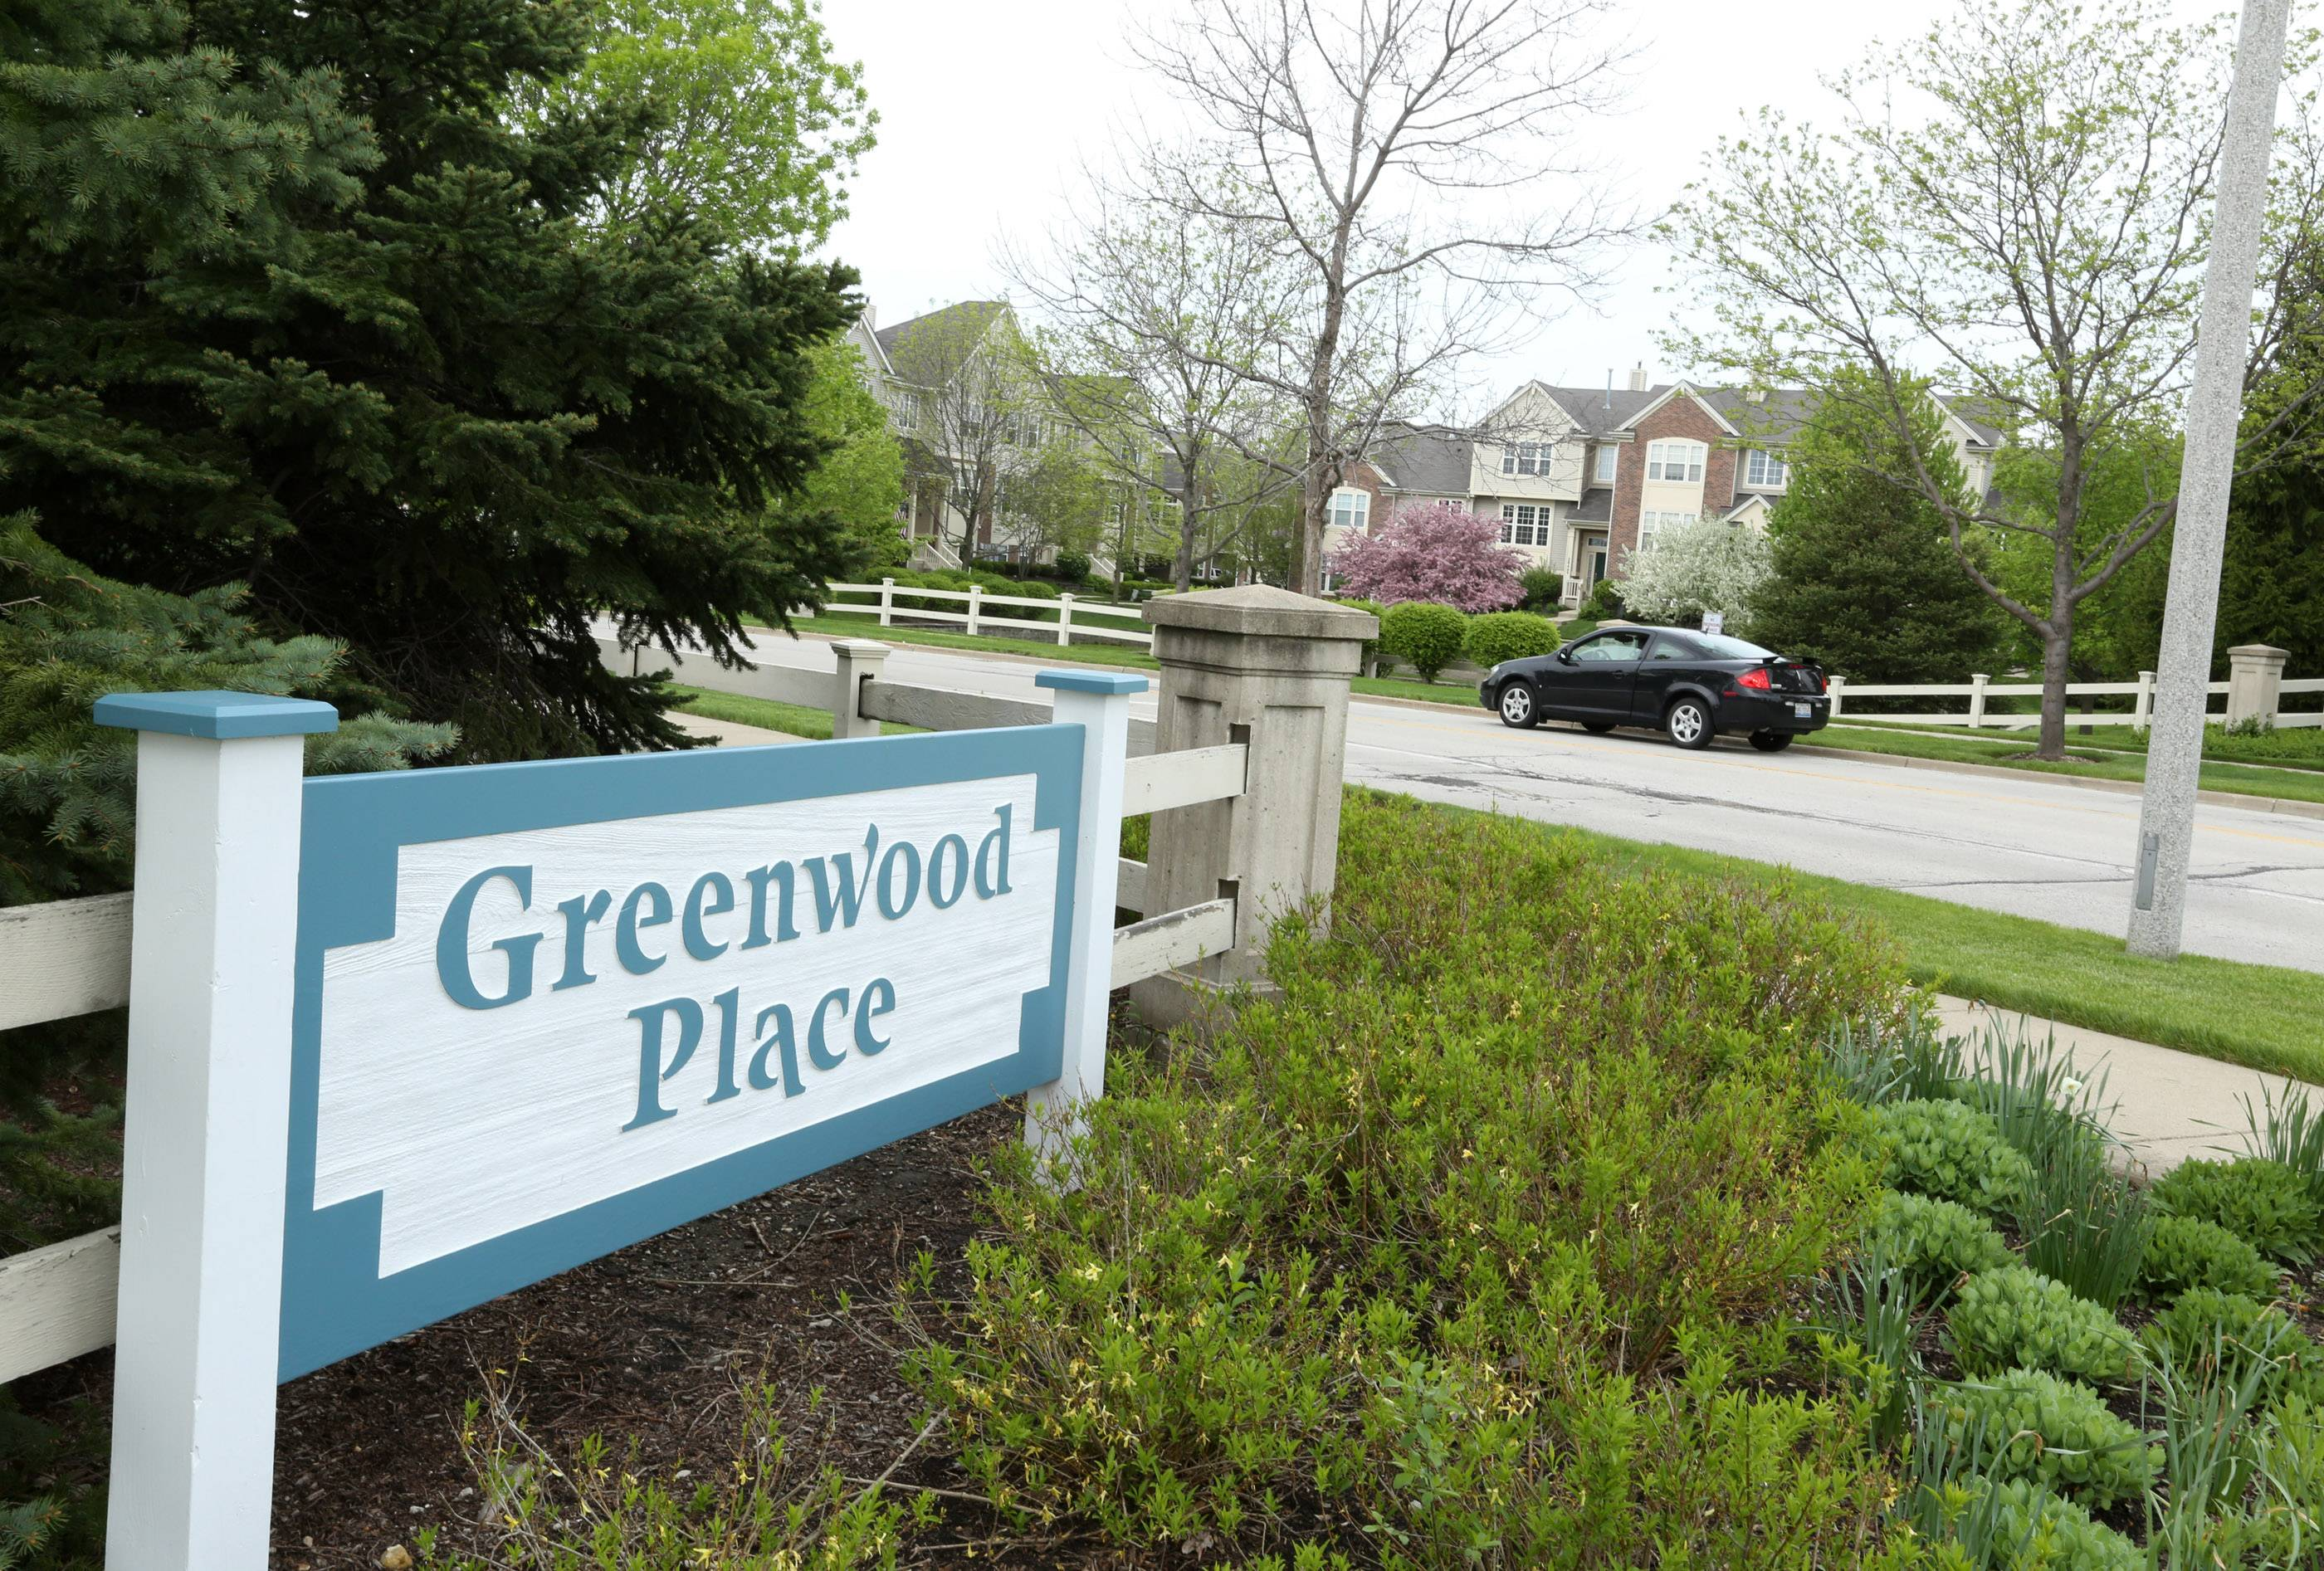 Greenwood Place is a small subdivision of 44 custom houses in Arlington Heights.